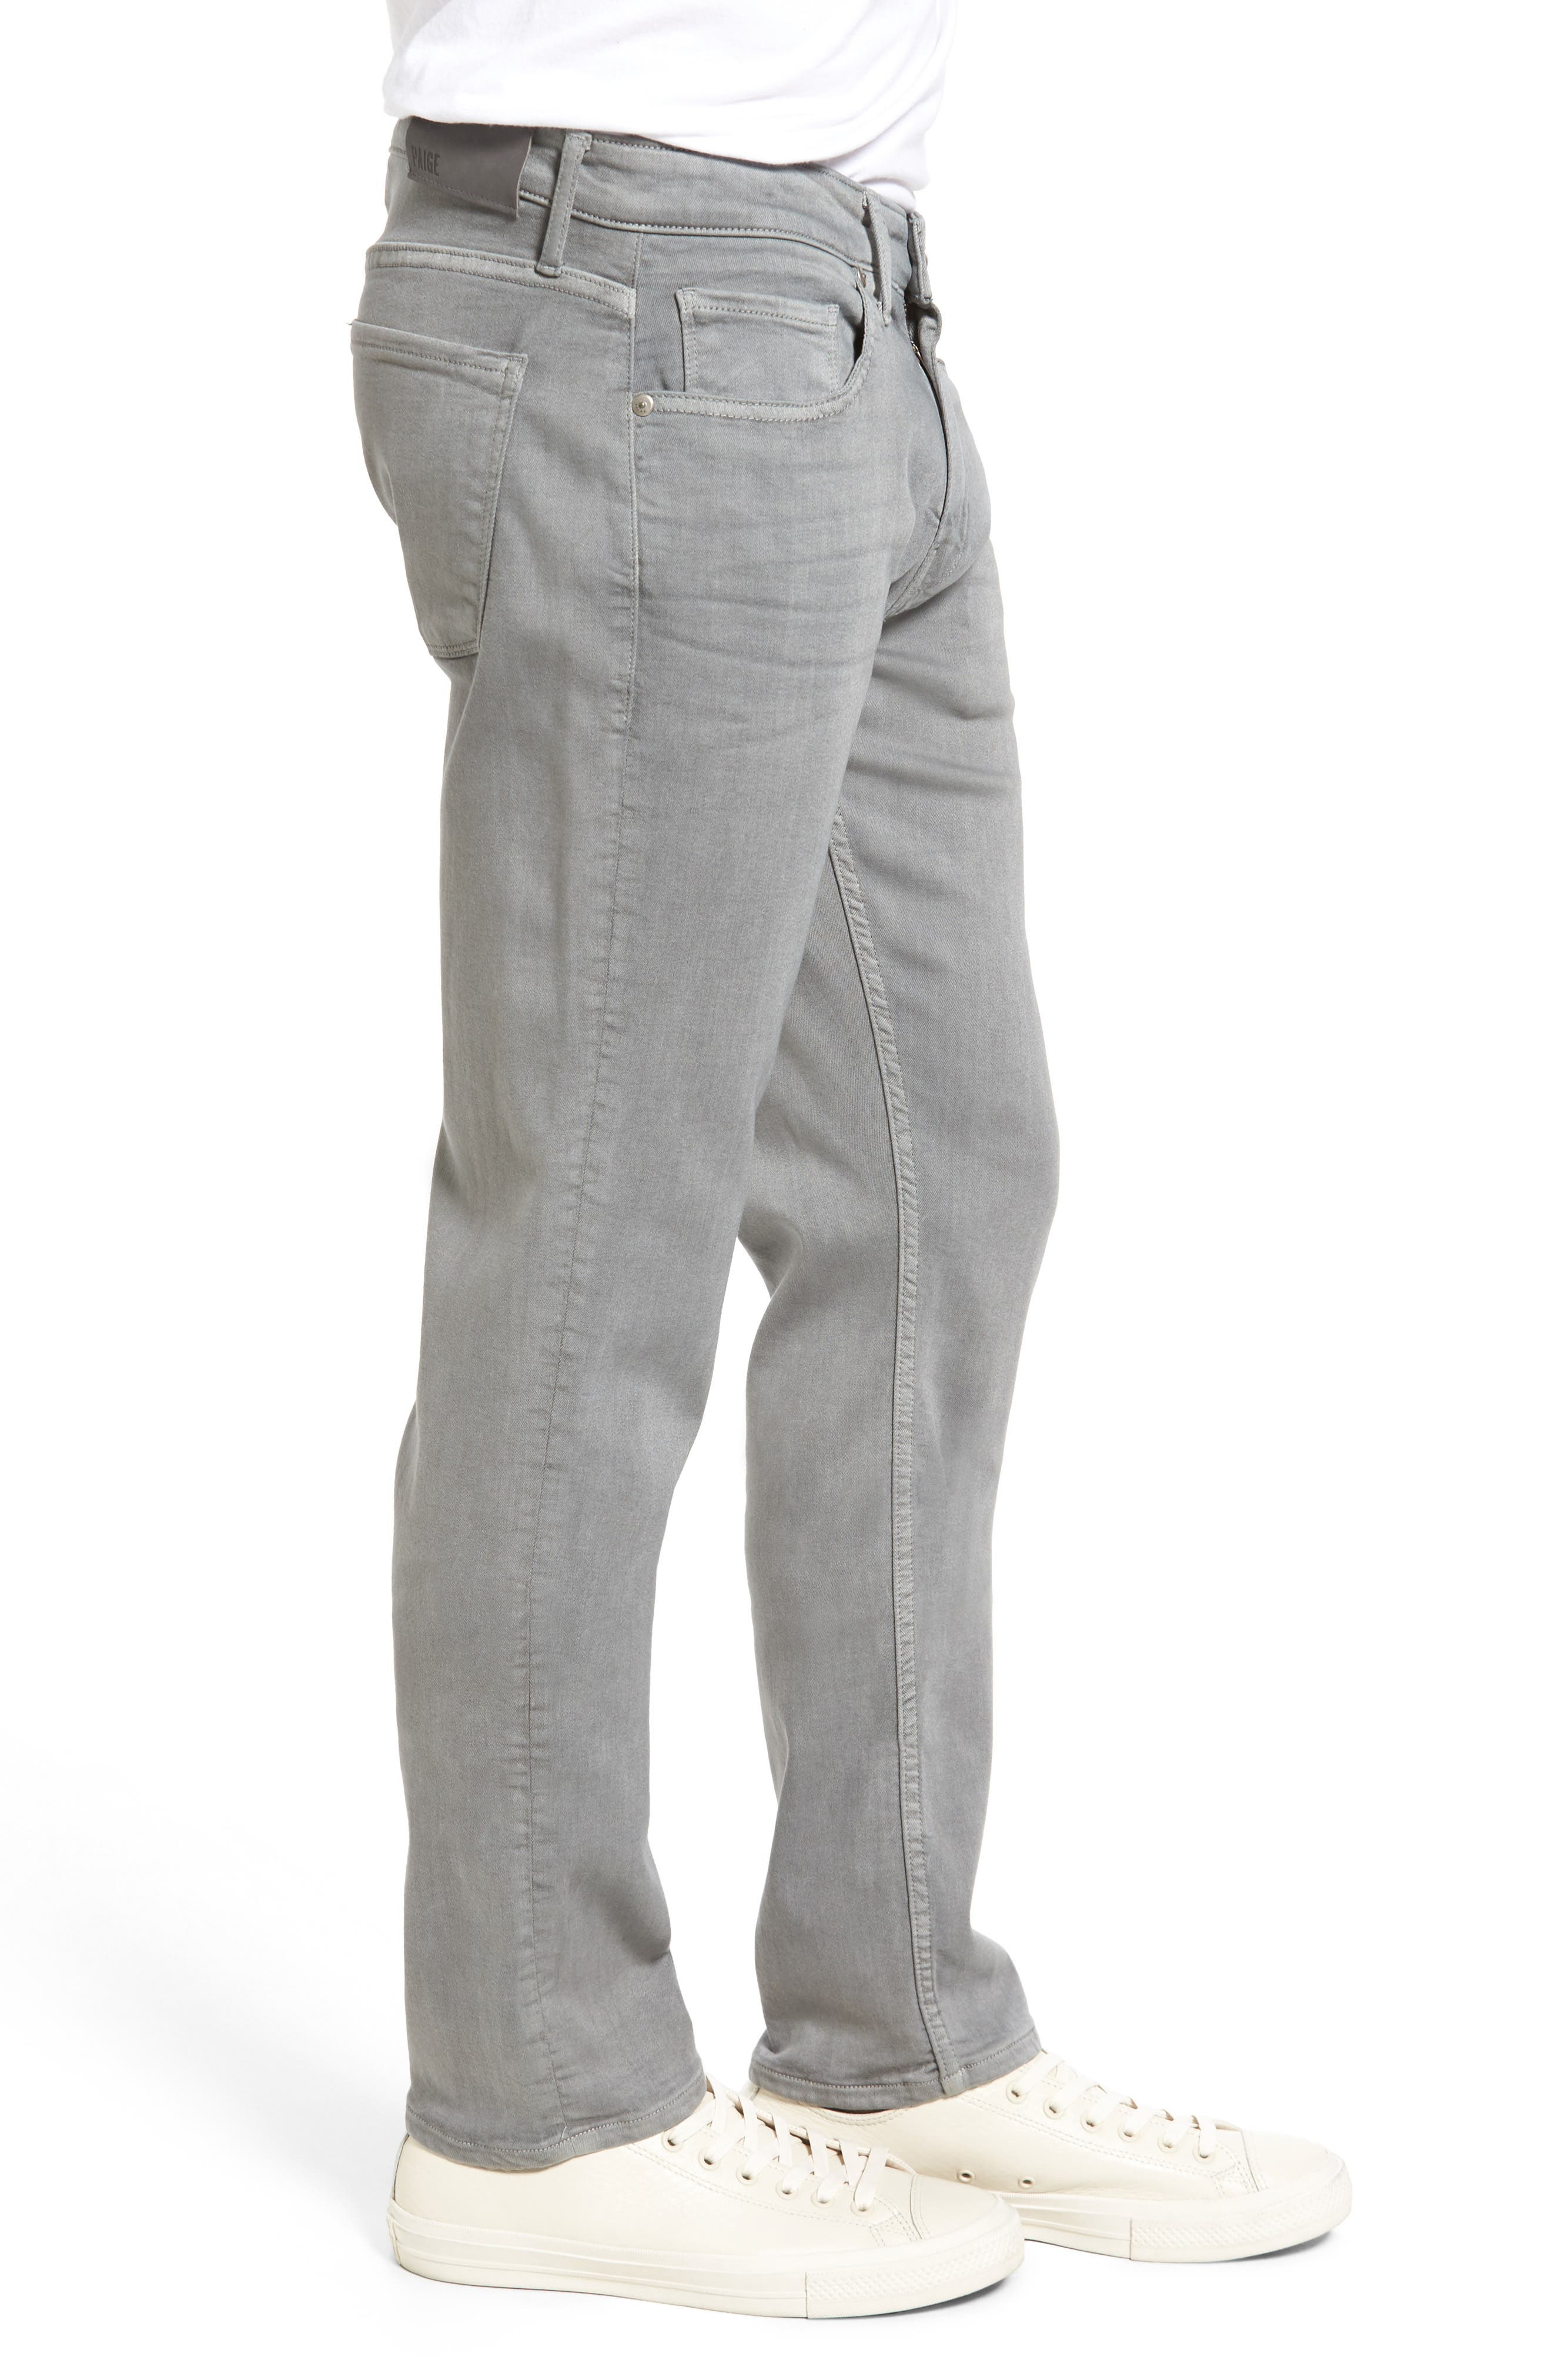 Transcend - Lennox Slim Fit Jeans,                             Alternate thumbnail 3, color,                             Grey Clay